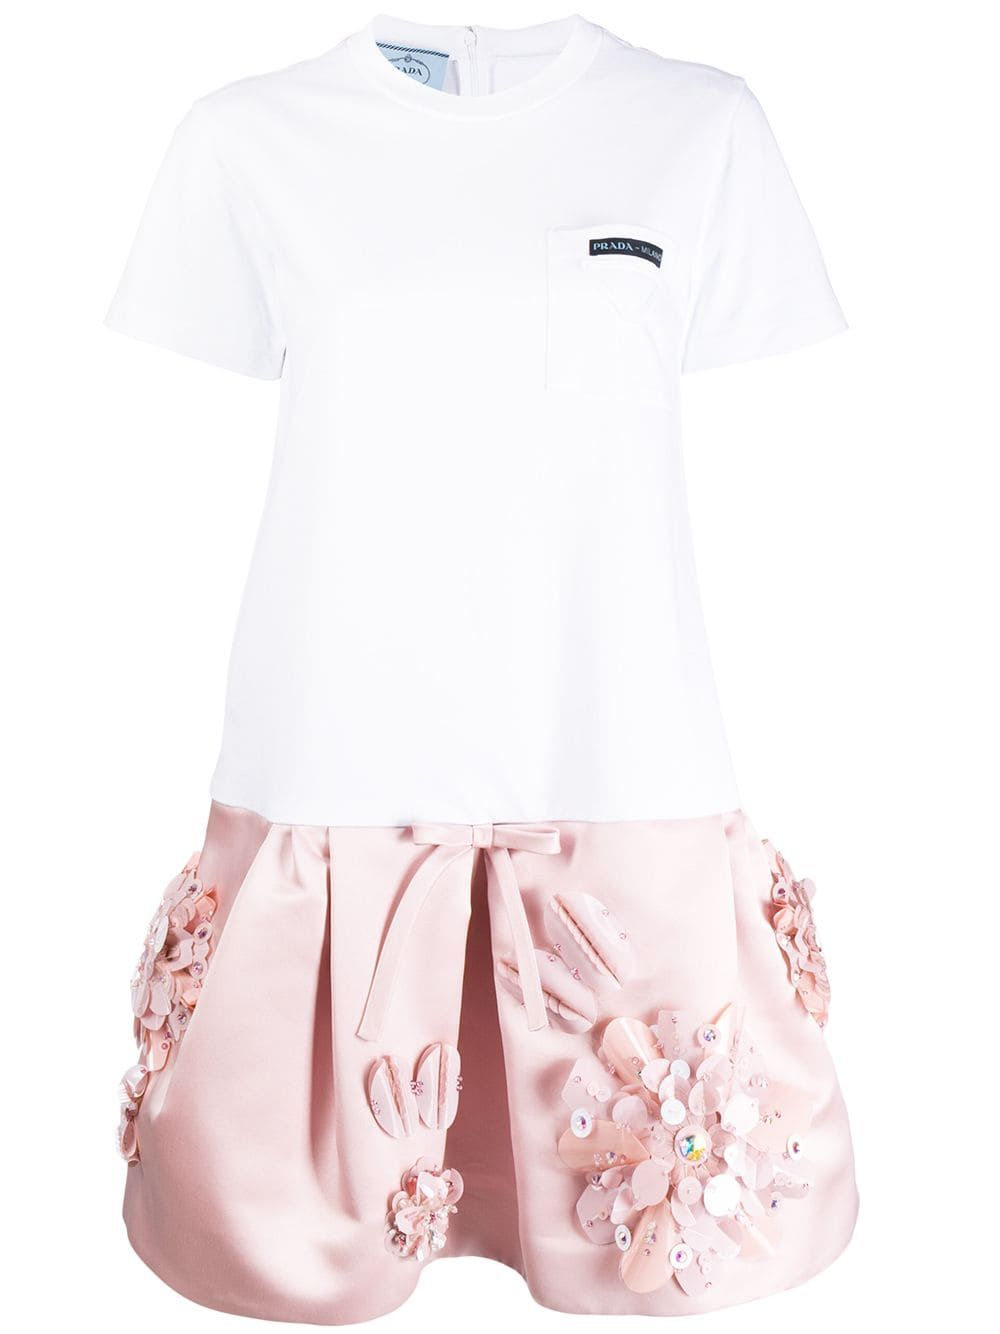 33d915275e78 Prada embellished T-shirt dress - White | Products in 2019 | Dresses ...